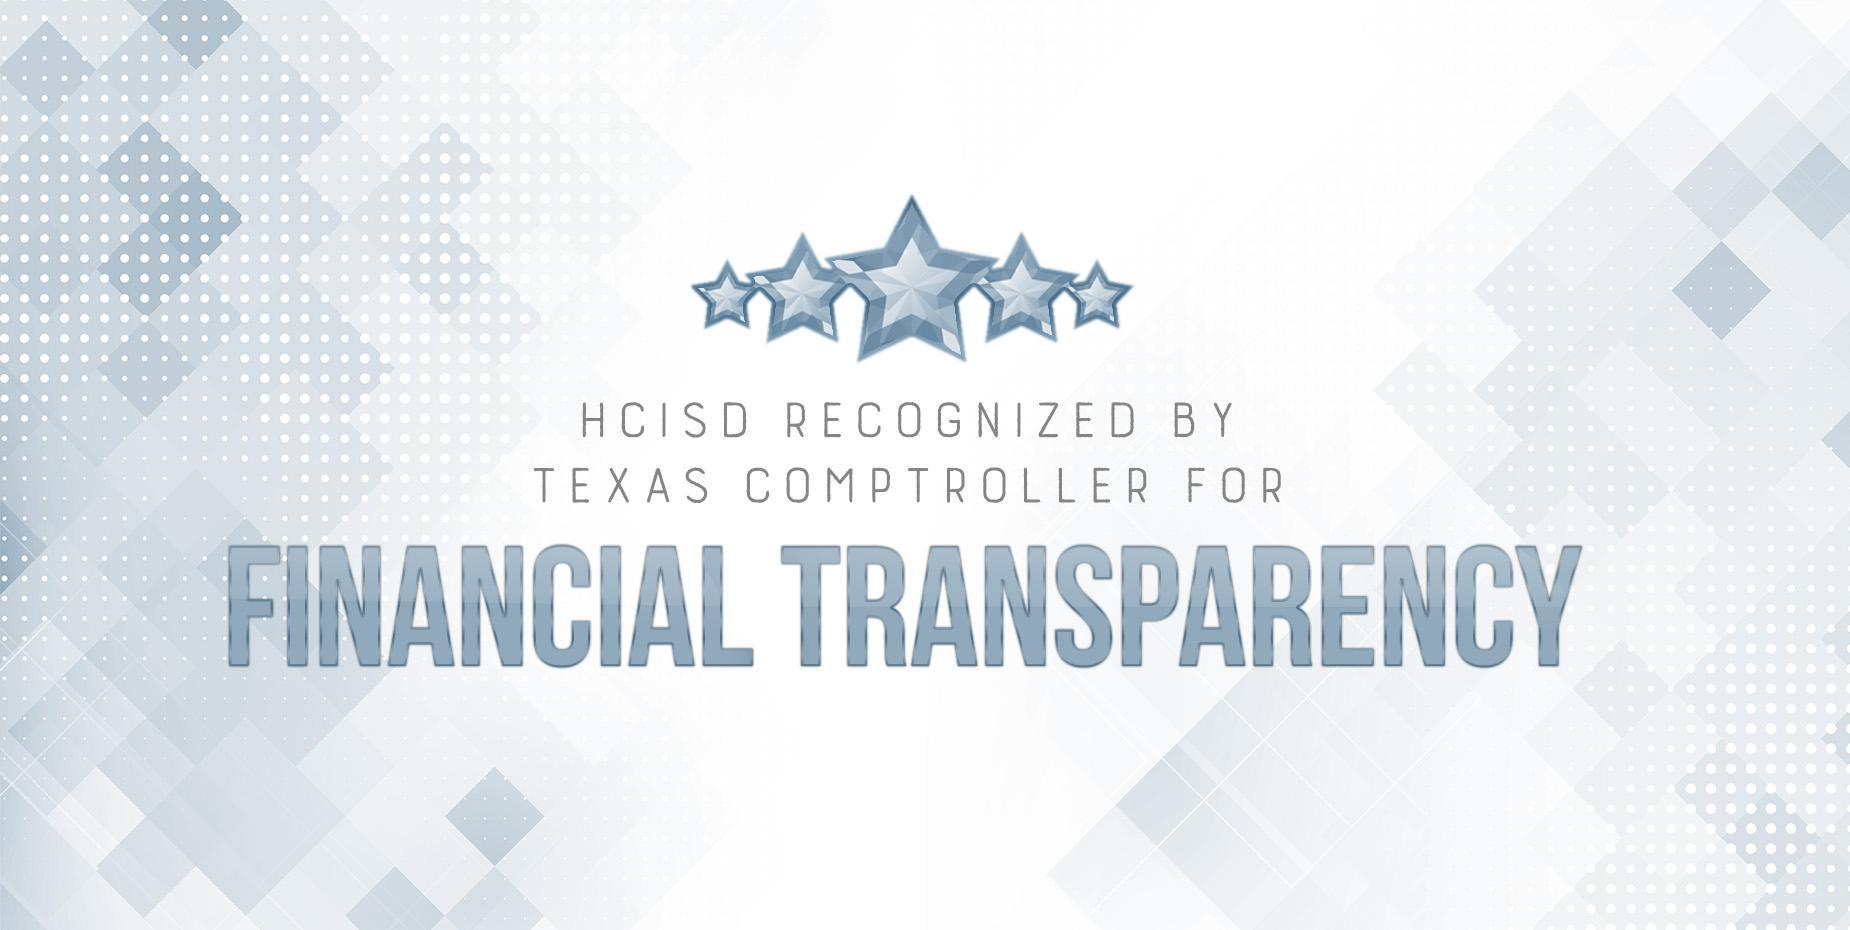 HCISD recognized for financial transparency